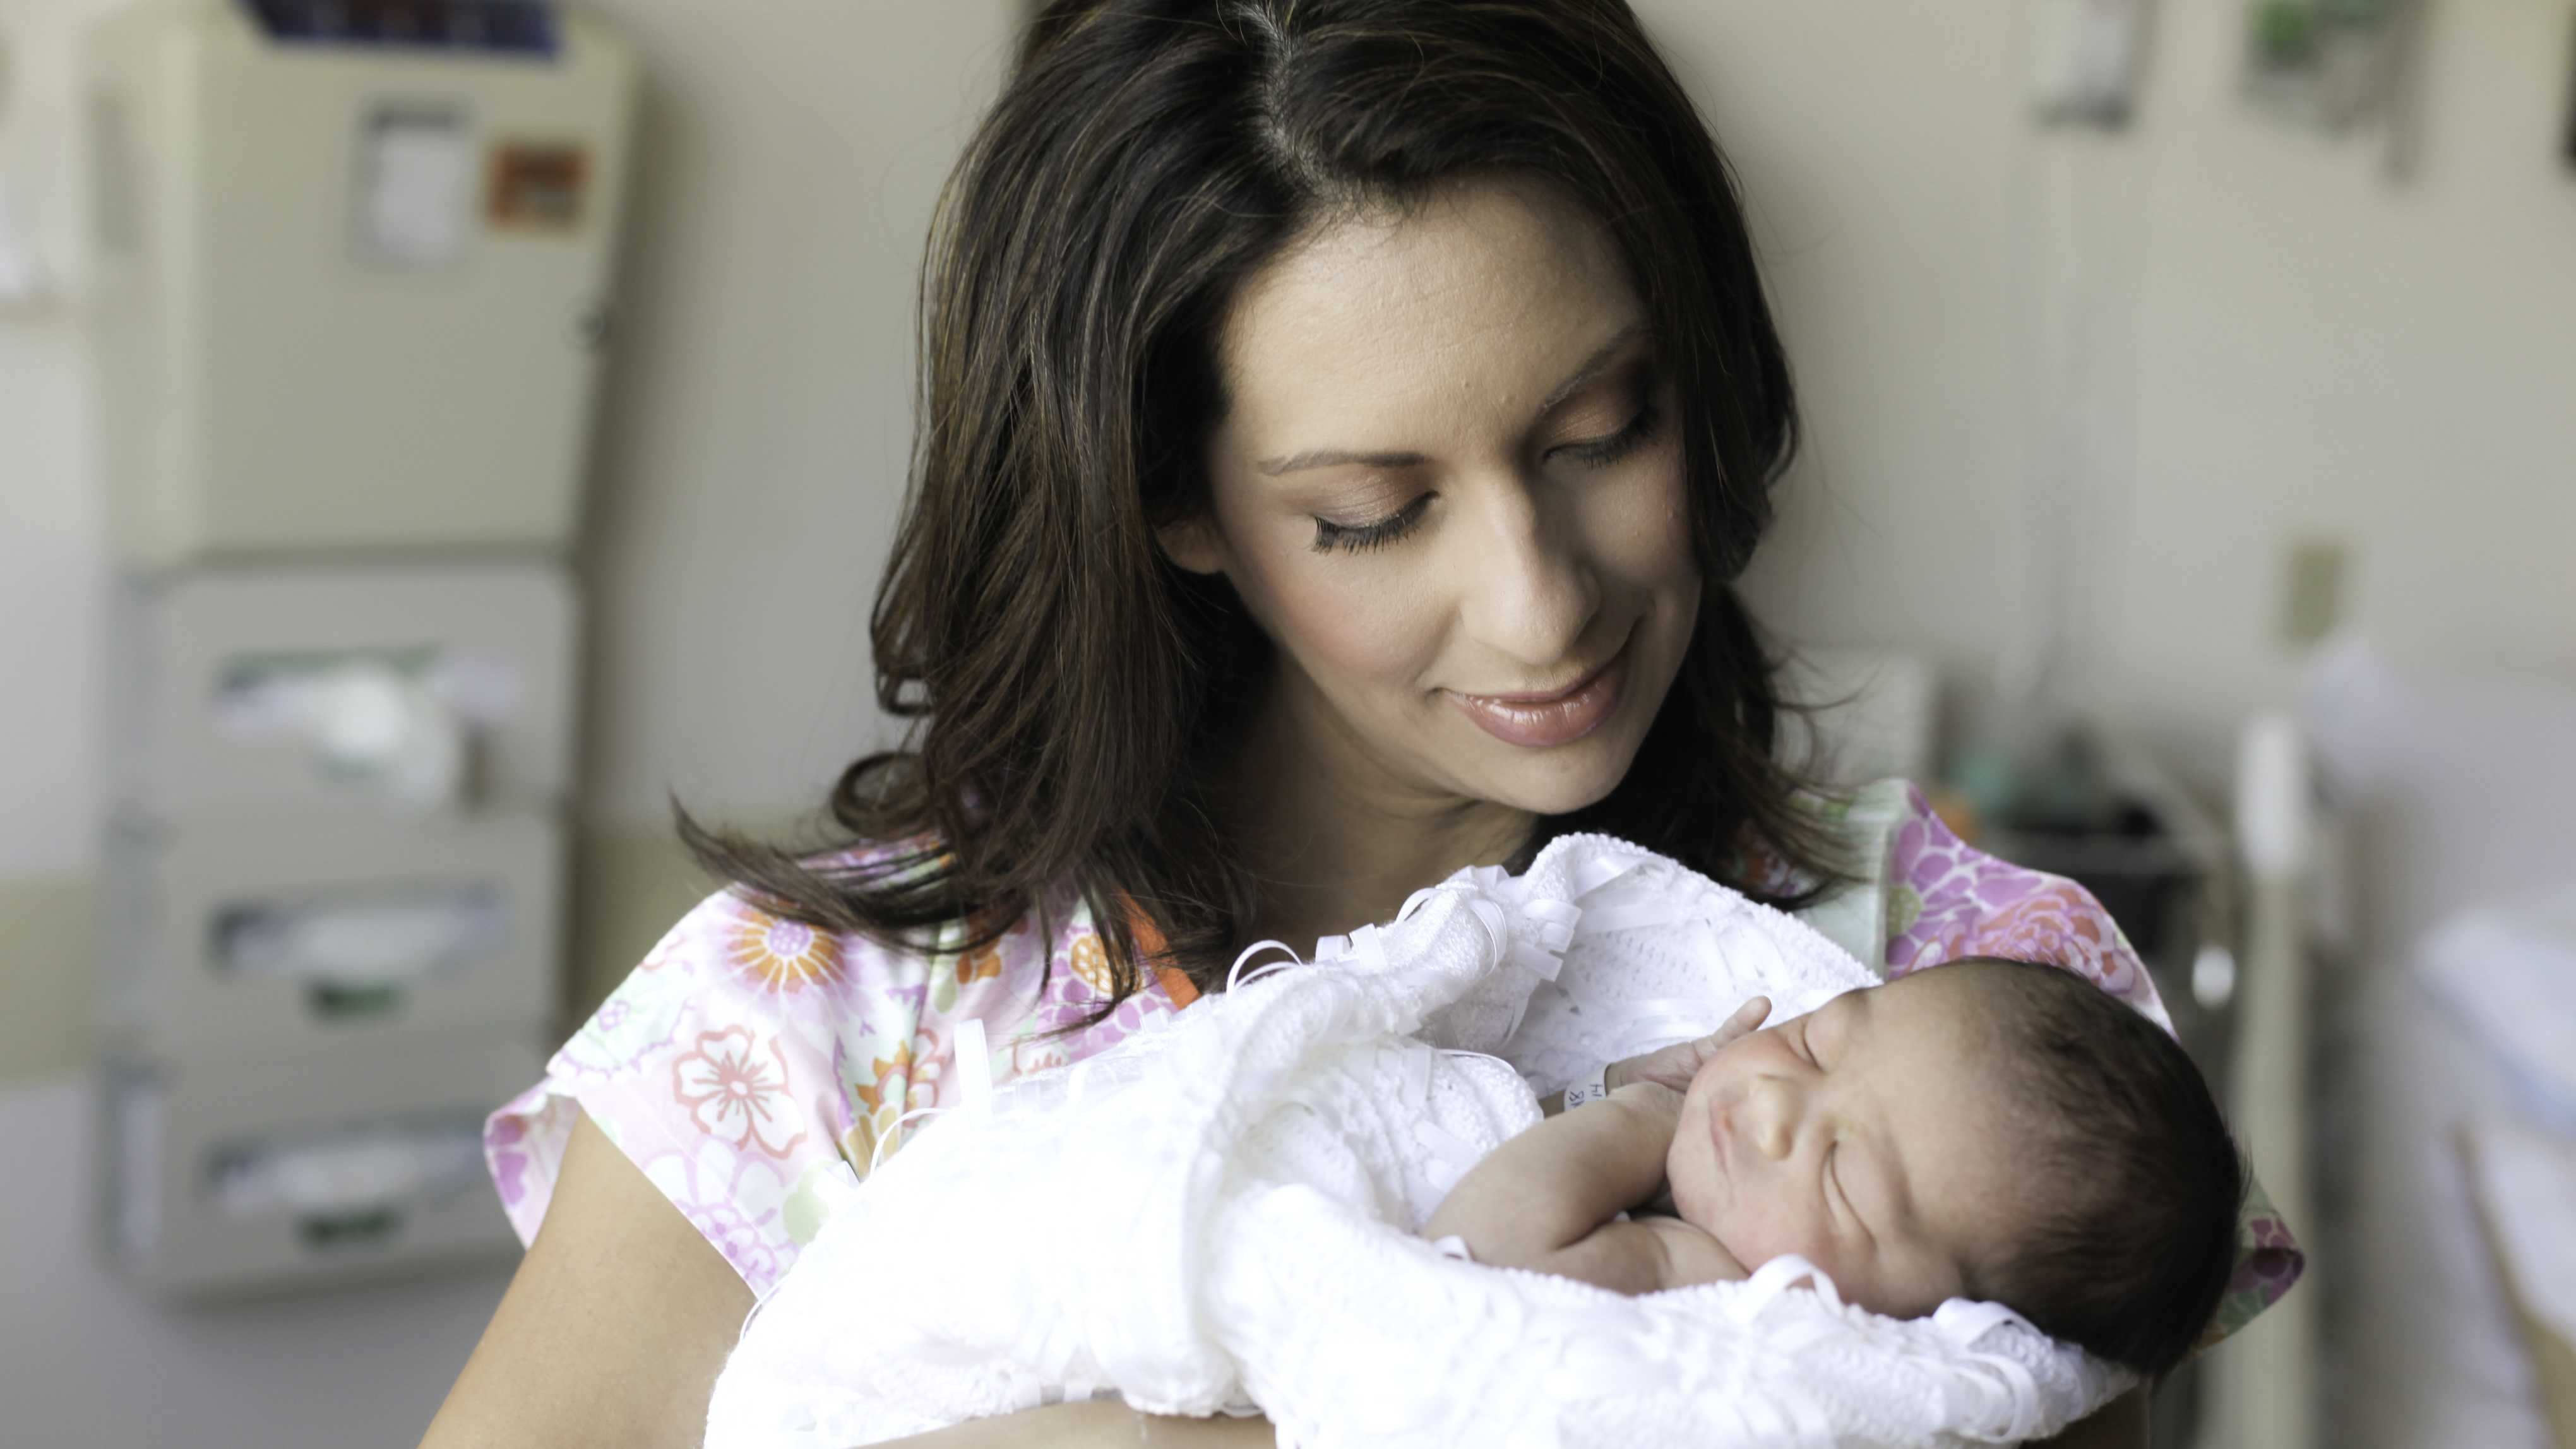 Here's reporter Leticia Ordaz and her baby, Bronx, who was born this Labor Day weekend.